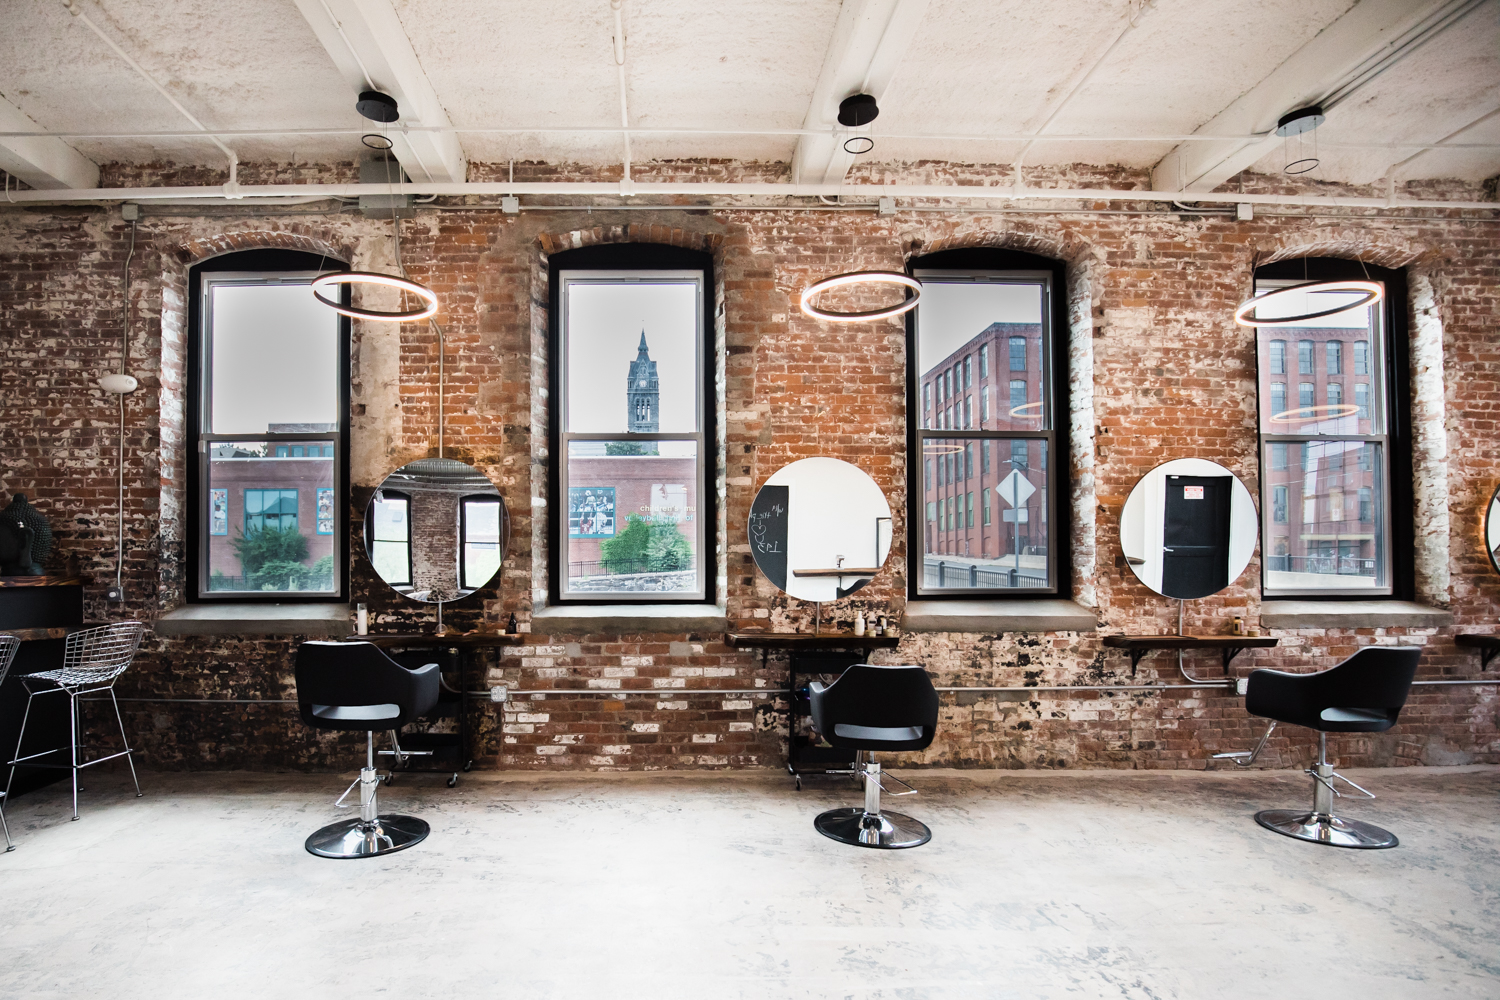 The inside of The Plan, a sustainable salon in downtown Holyoke, Massachusetts.